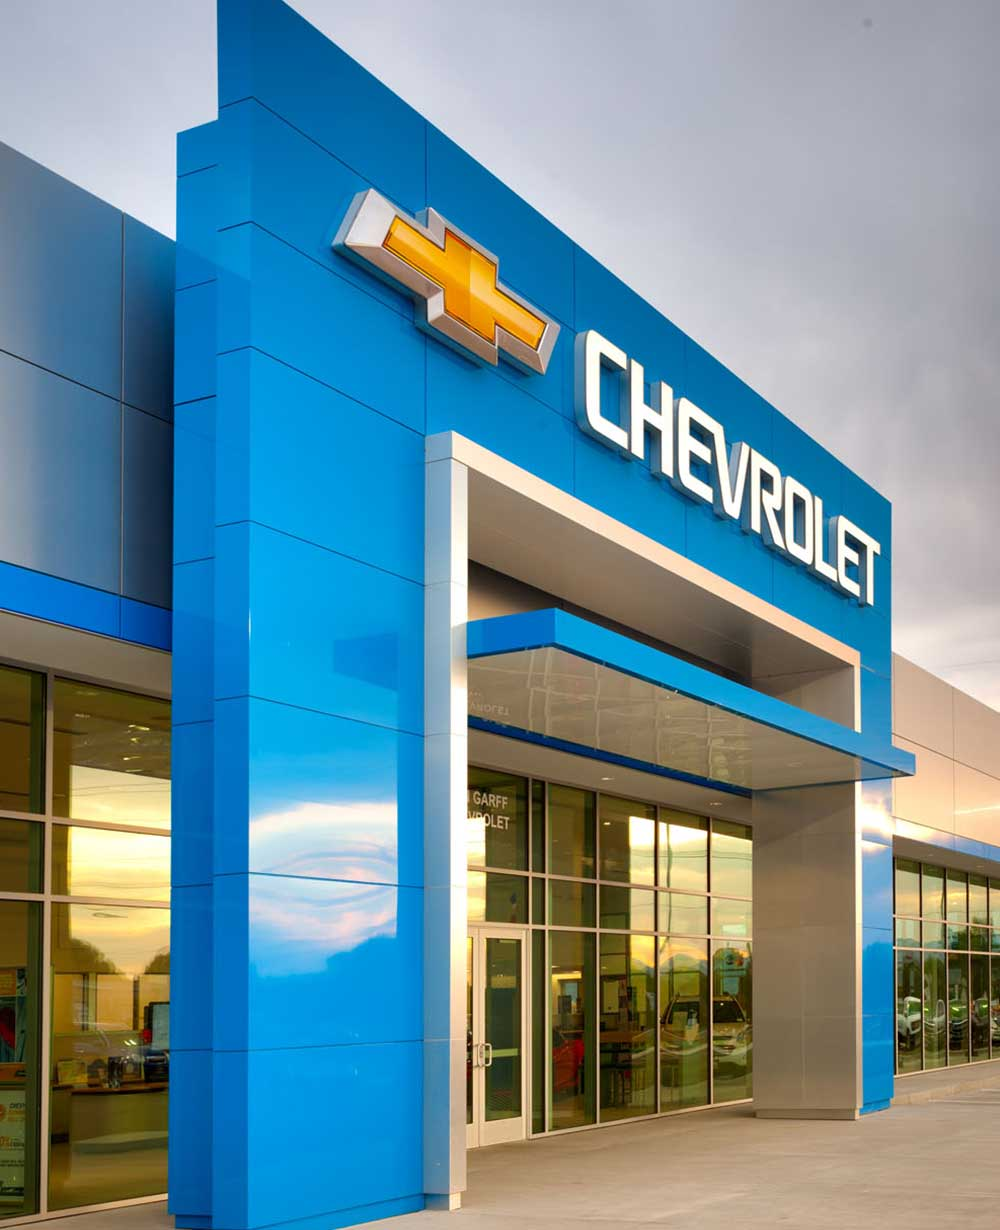 Automotive-Architecture-Utah-Ken-Garff-Chevrolet-American-Fork-(12)